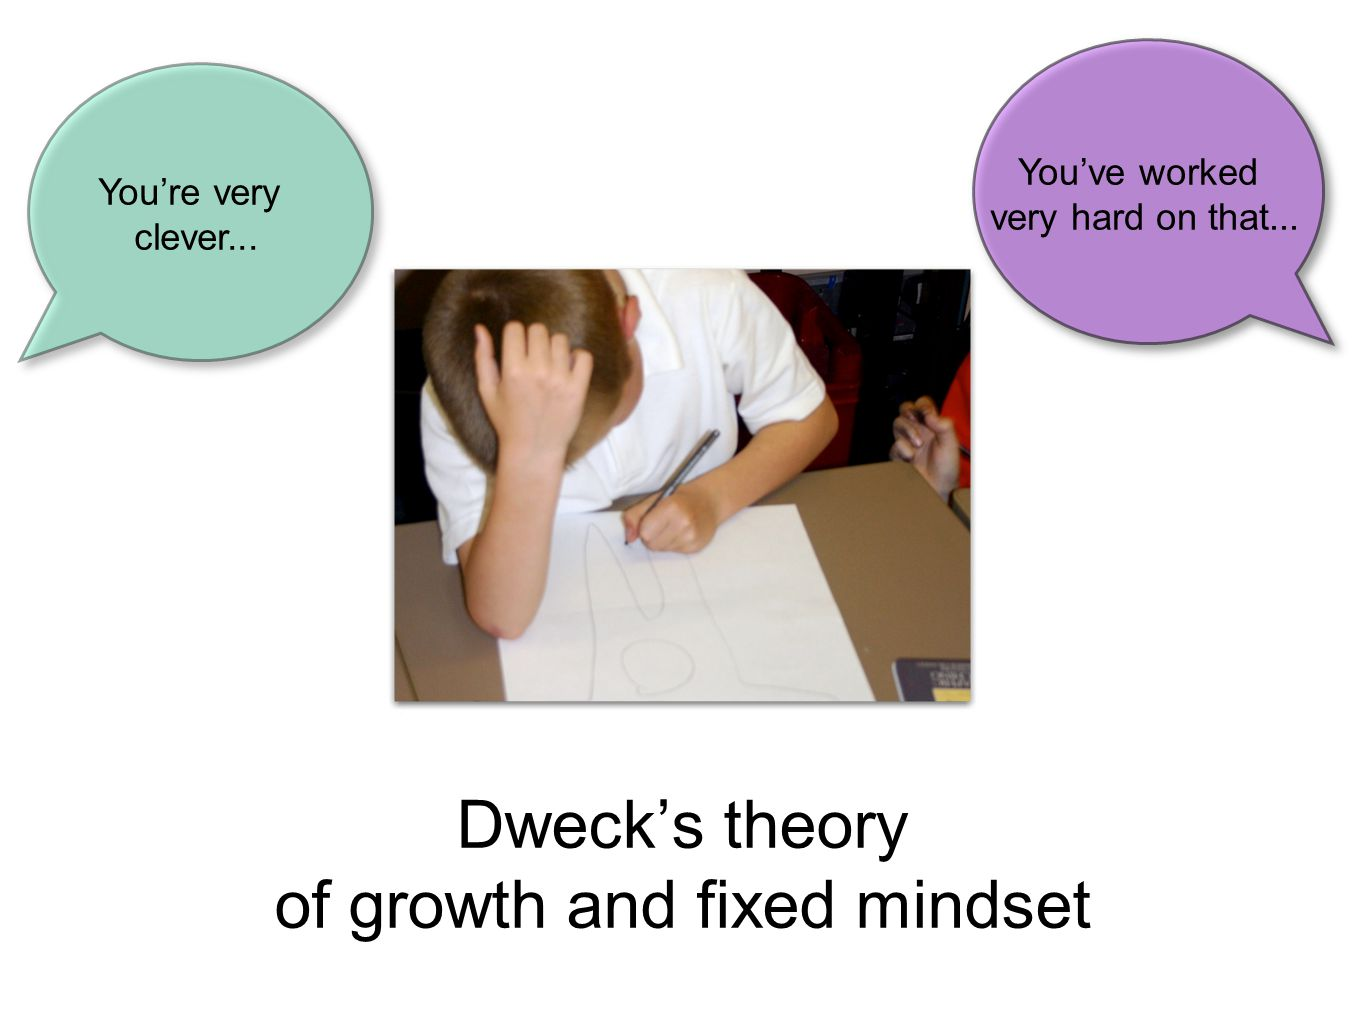 Dweck's theory of growth and fixed mindset You're very clever... You've worked very hard on that...